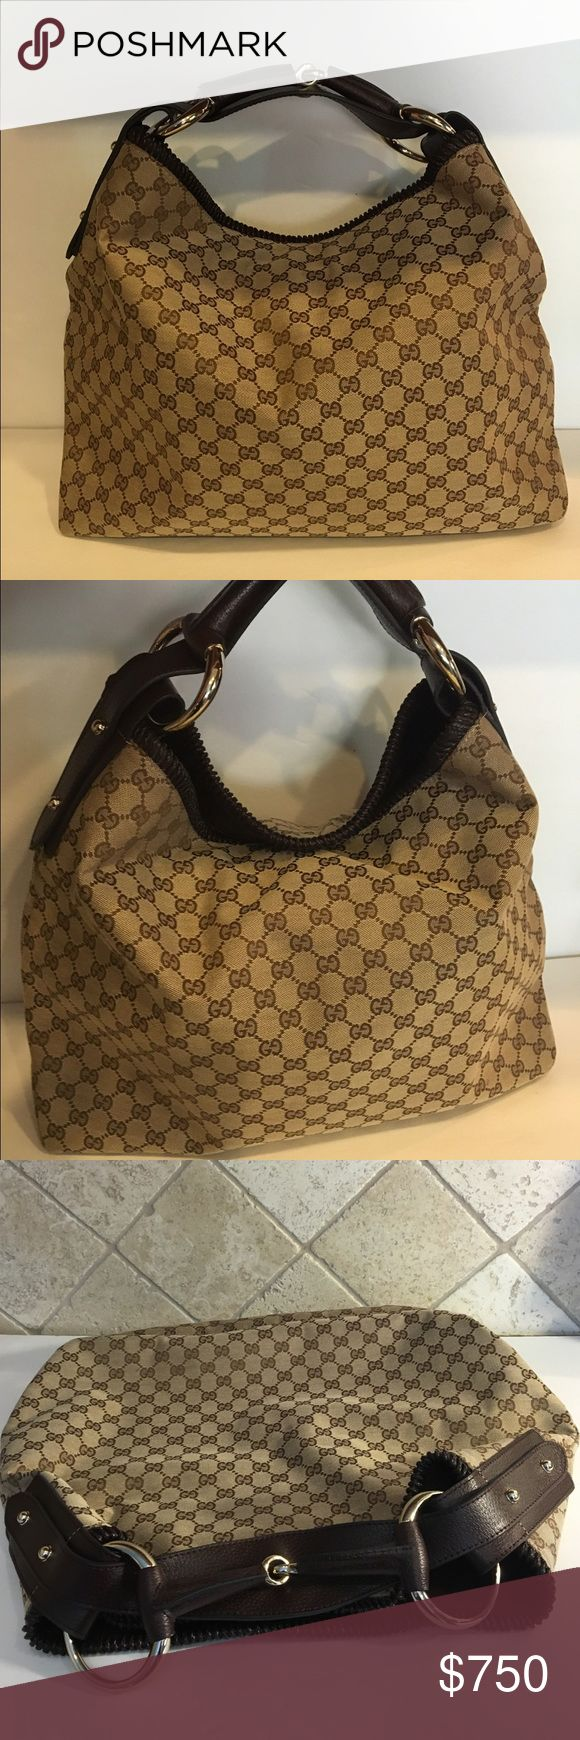 NEW AUTH GUCCI PURSE 100% authentic Cucci purse! New! Never been worn! Large size! Little heavy! No zipper, has a magnet clip! PRICE IS FIRM Gucci Bags Satchels